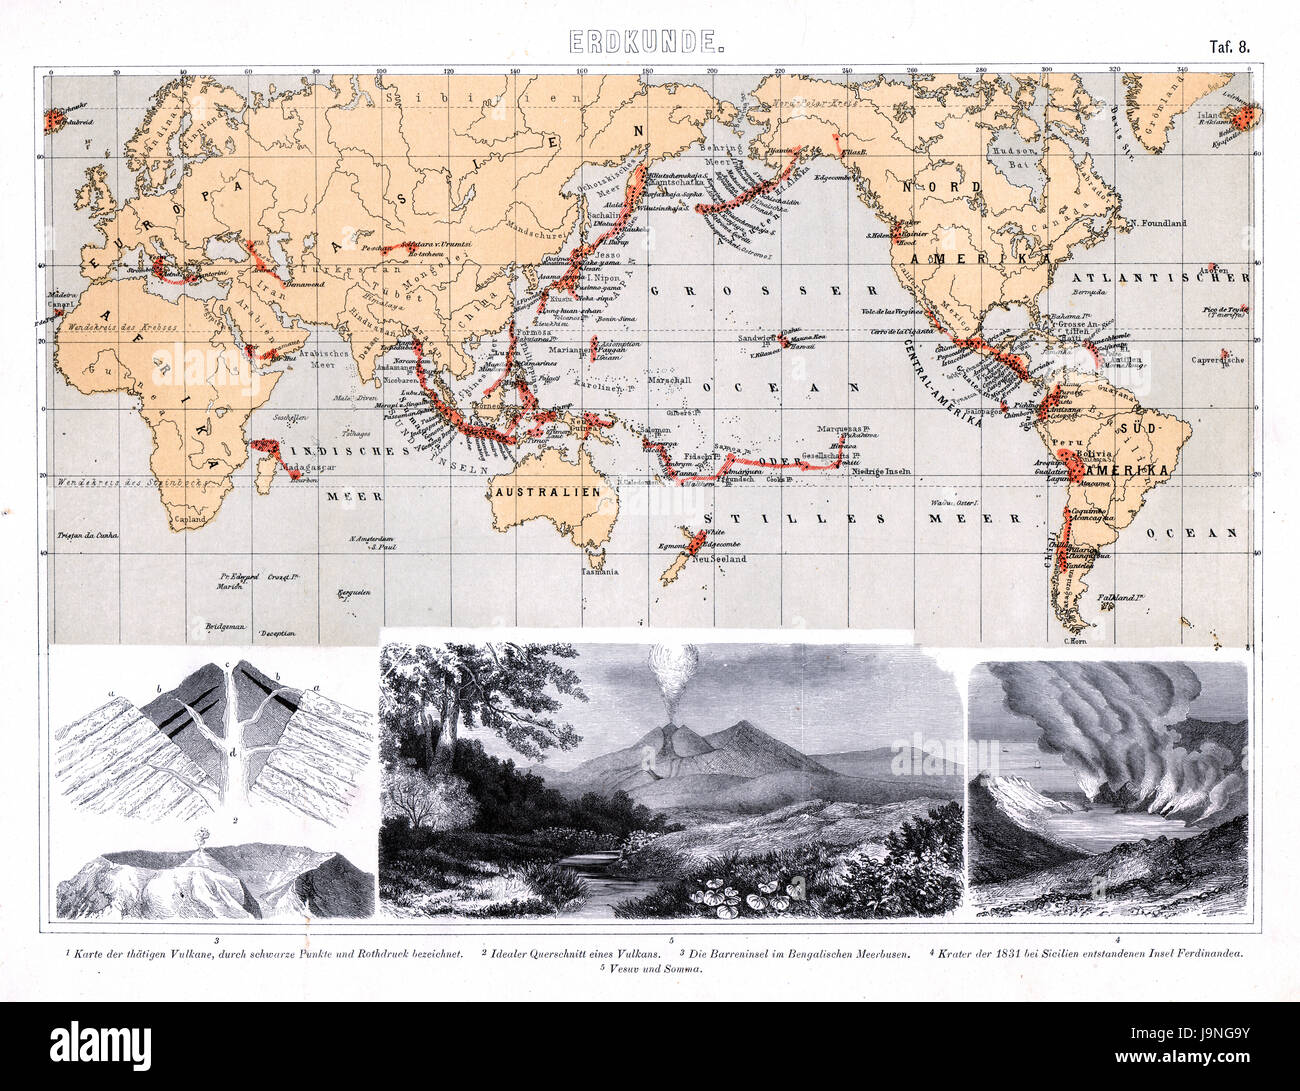 Map of Volcanic Activity with view and diagrams of volcanoes, earth science, geology. - Stock Image